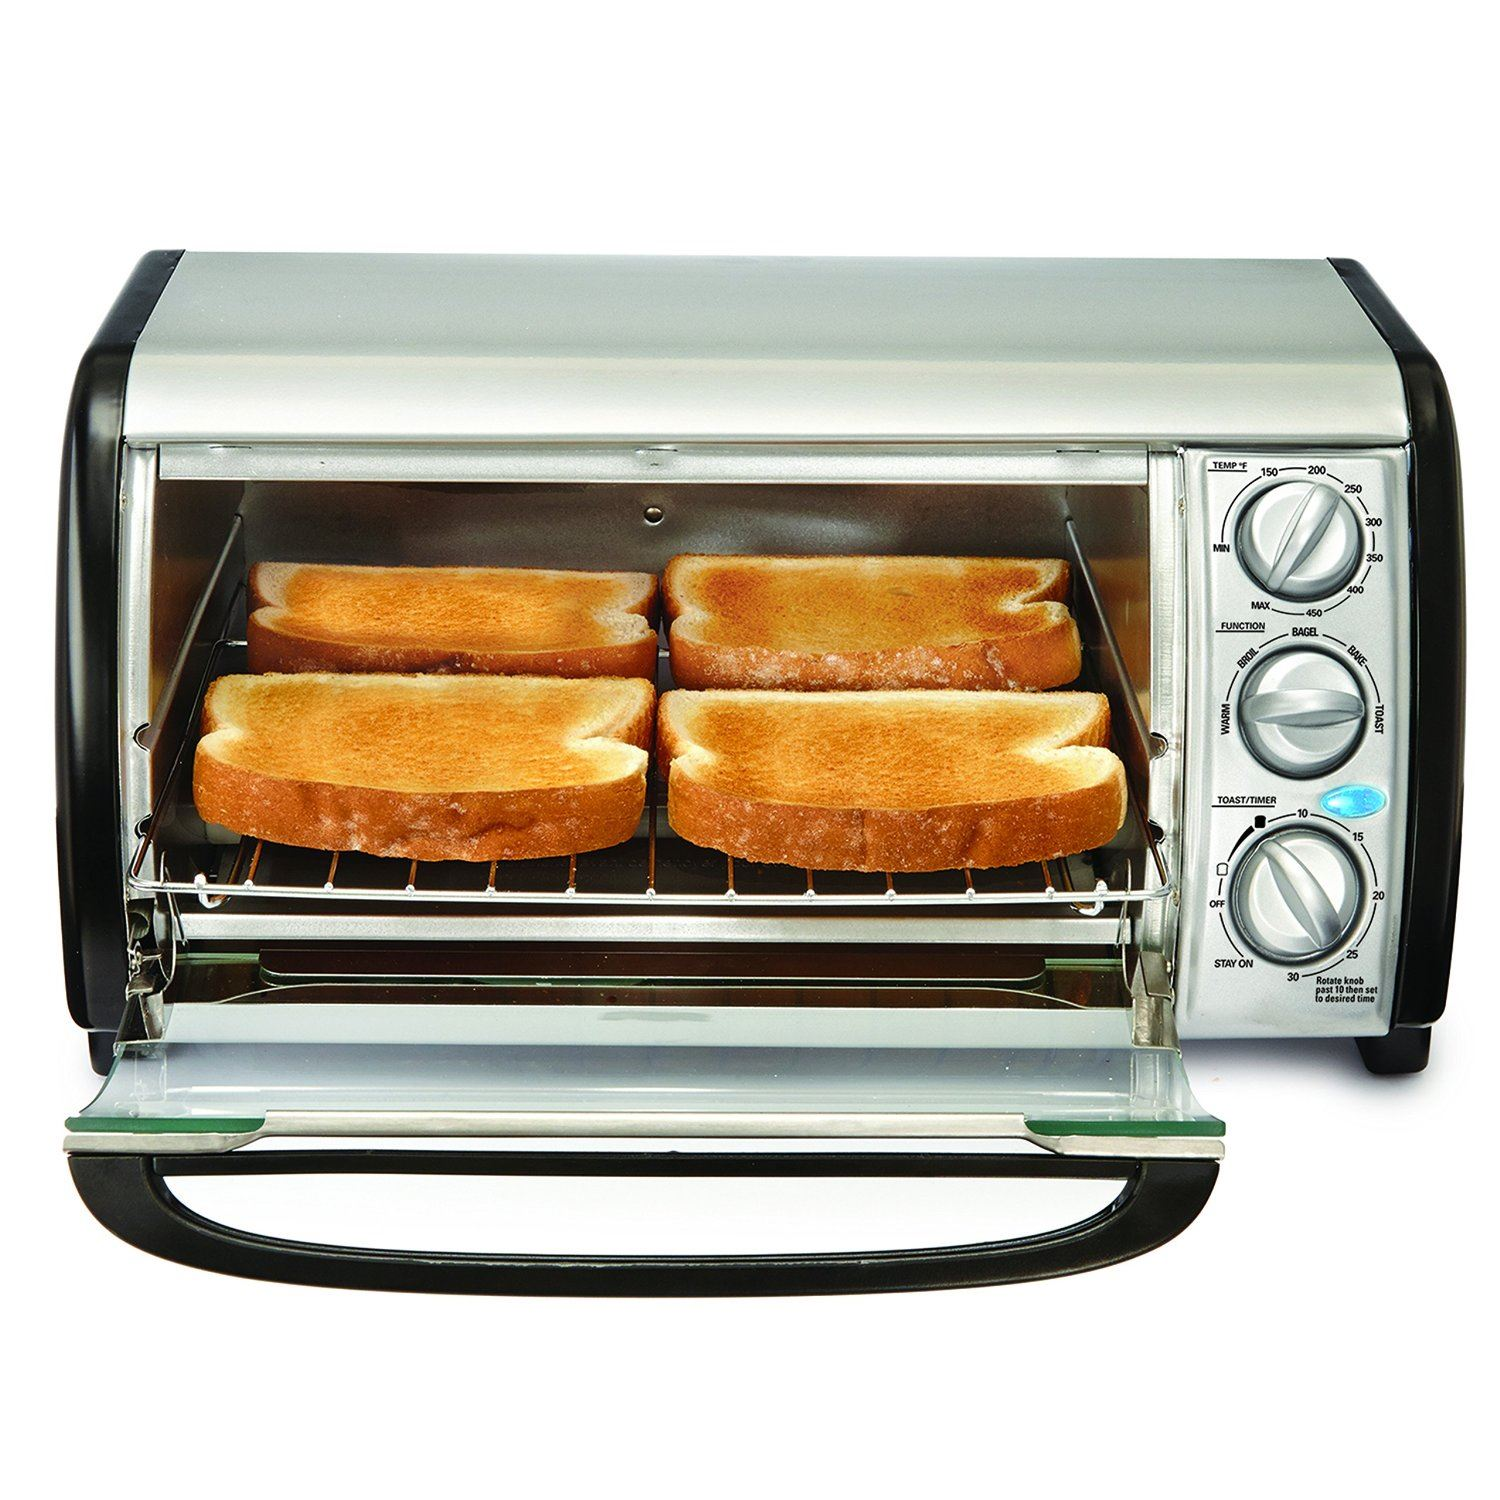 Use Toaster Oven To Bake Cake